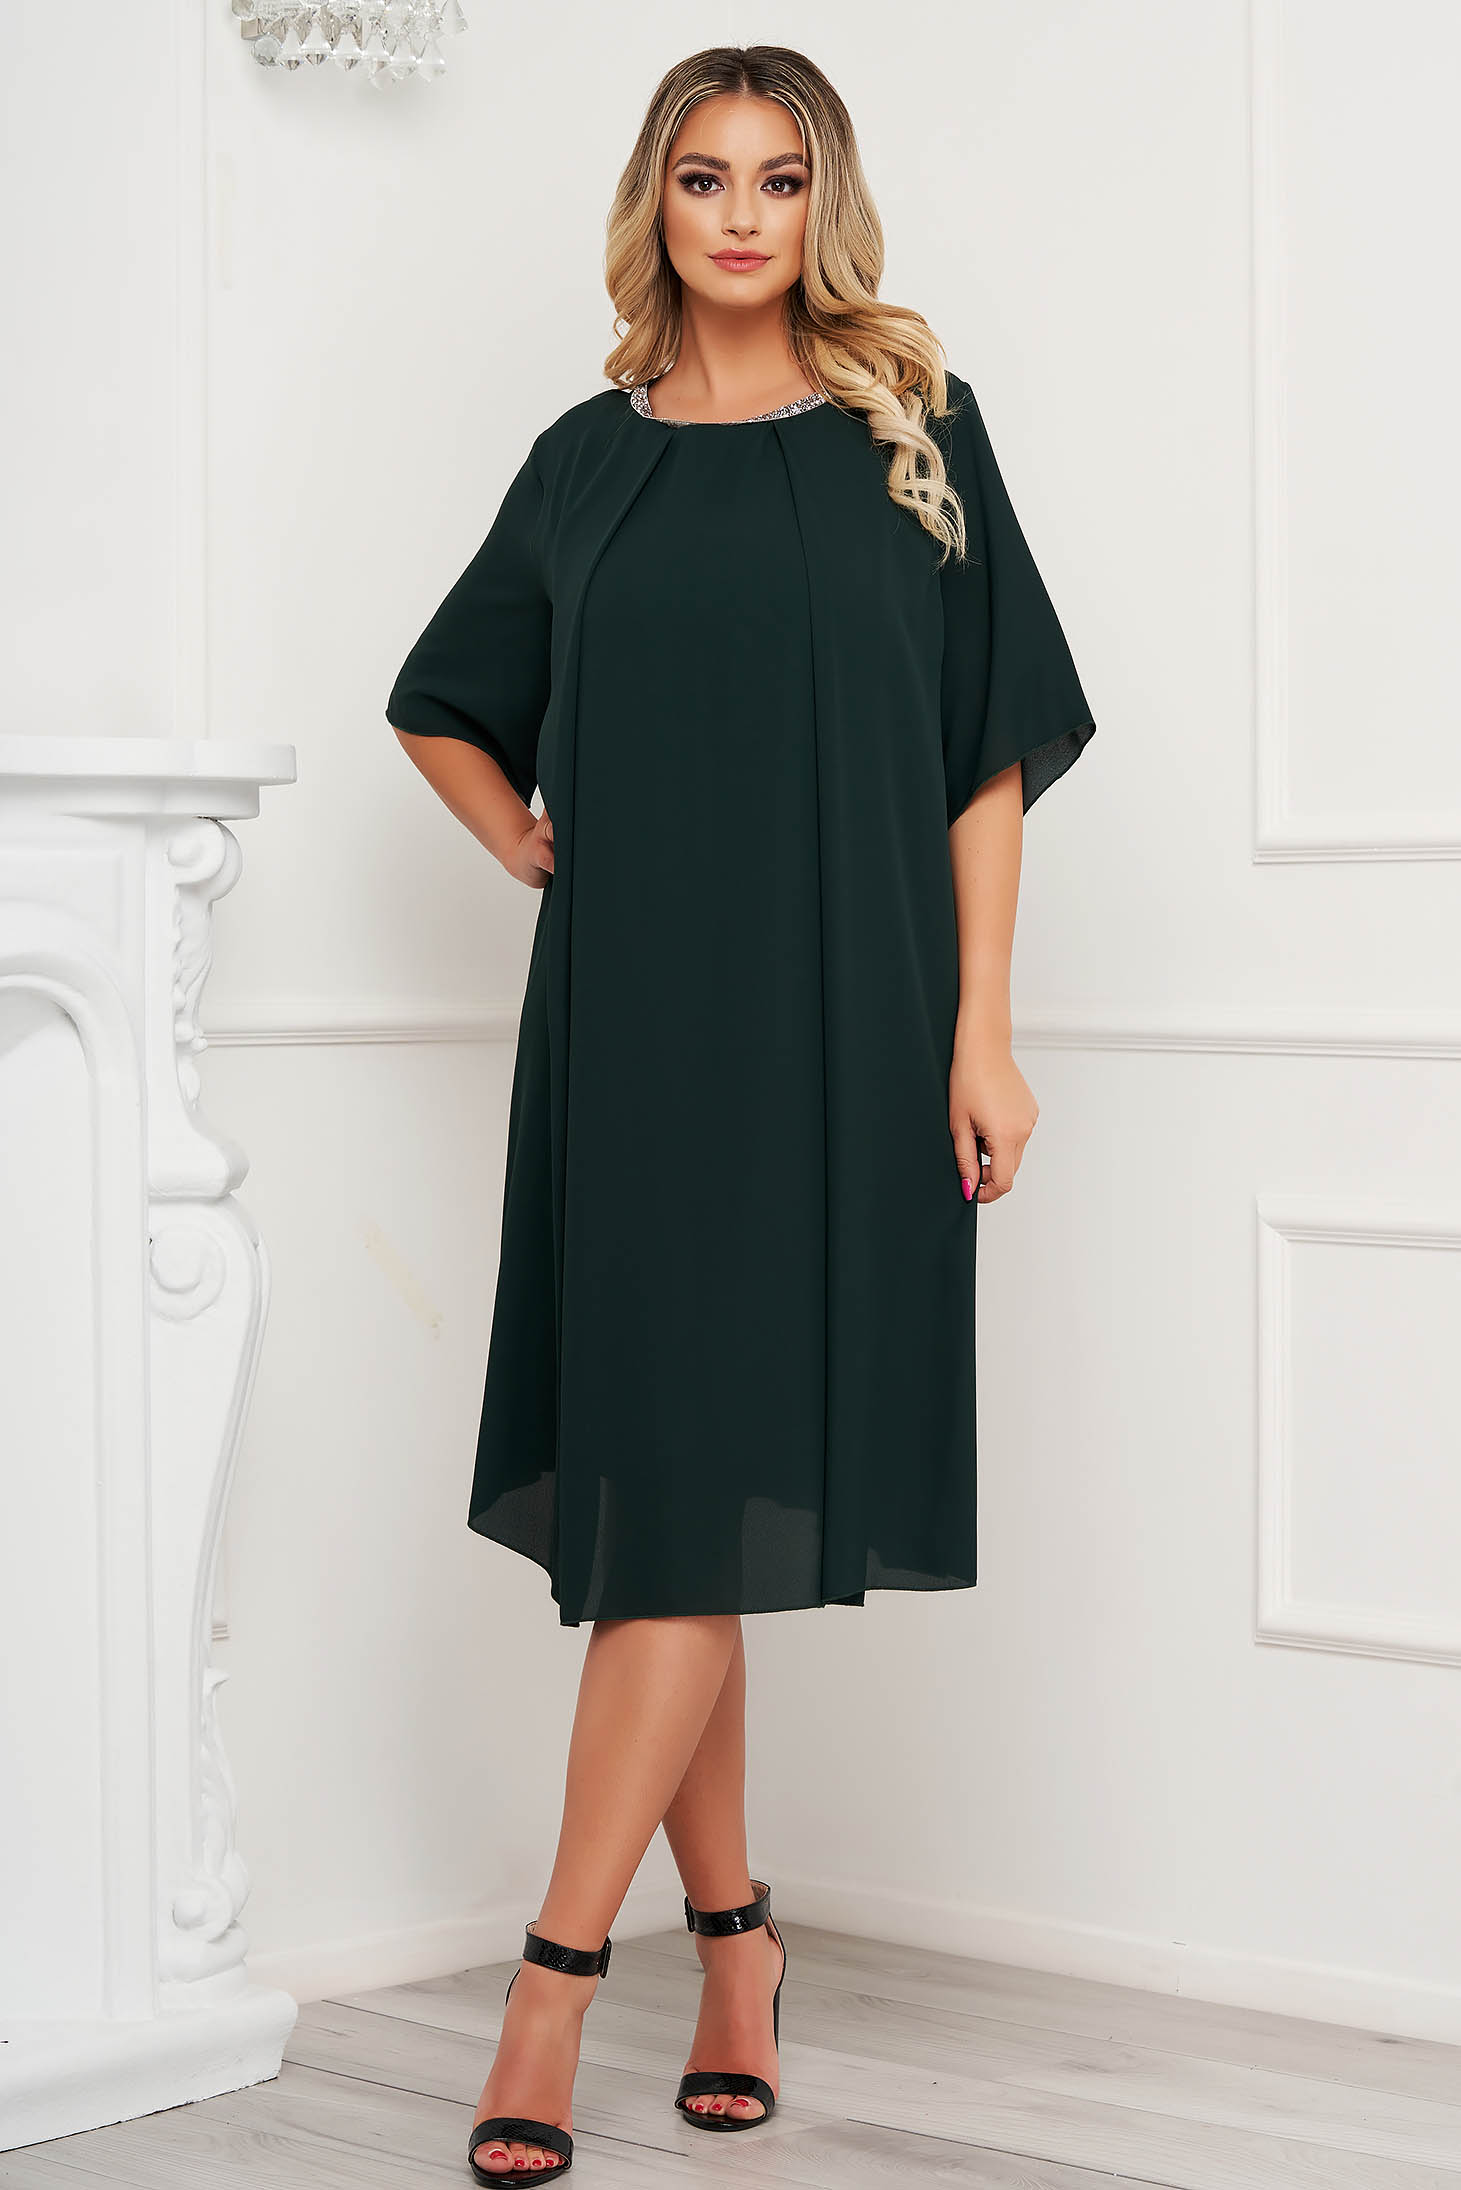 From veil fabric midi loose fit with crystal embellished details darkgreen dress occasional